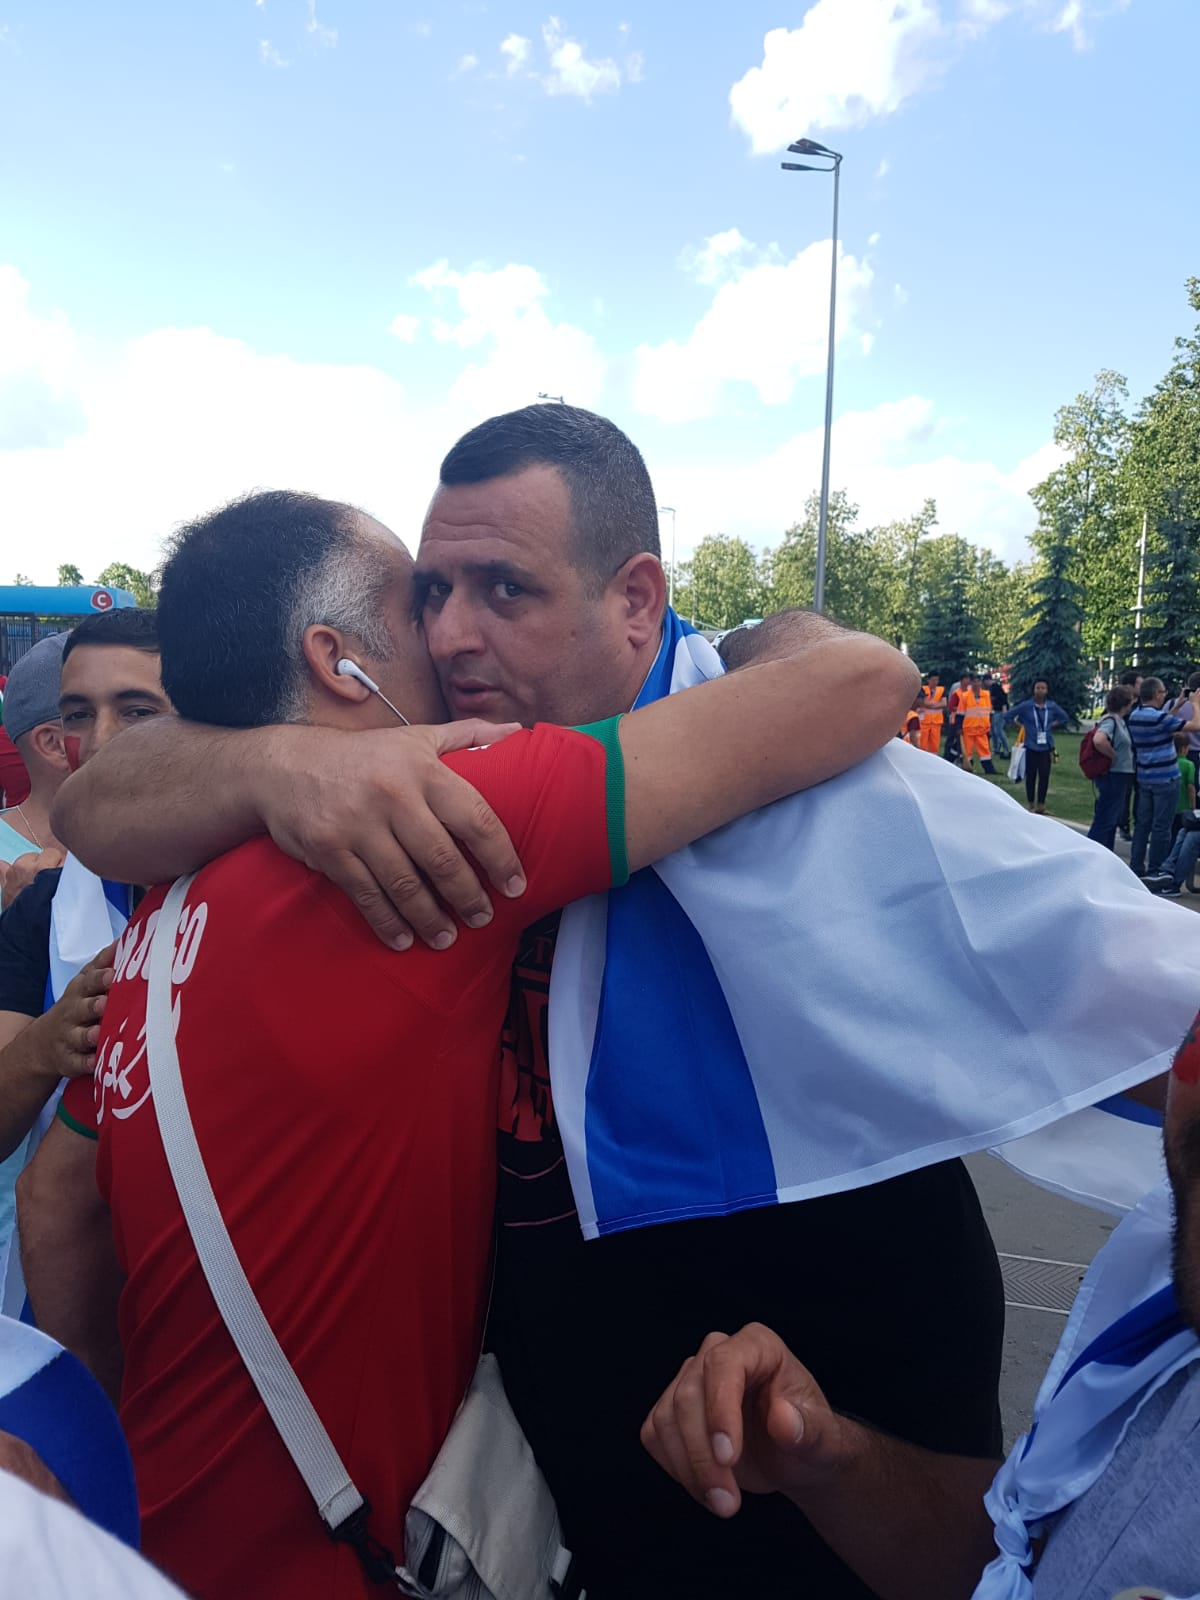 Israeli and Moroccan fans at the World Cup (Photo: Amir Peleg)